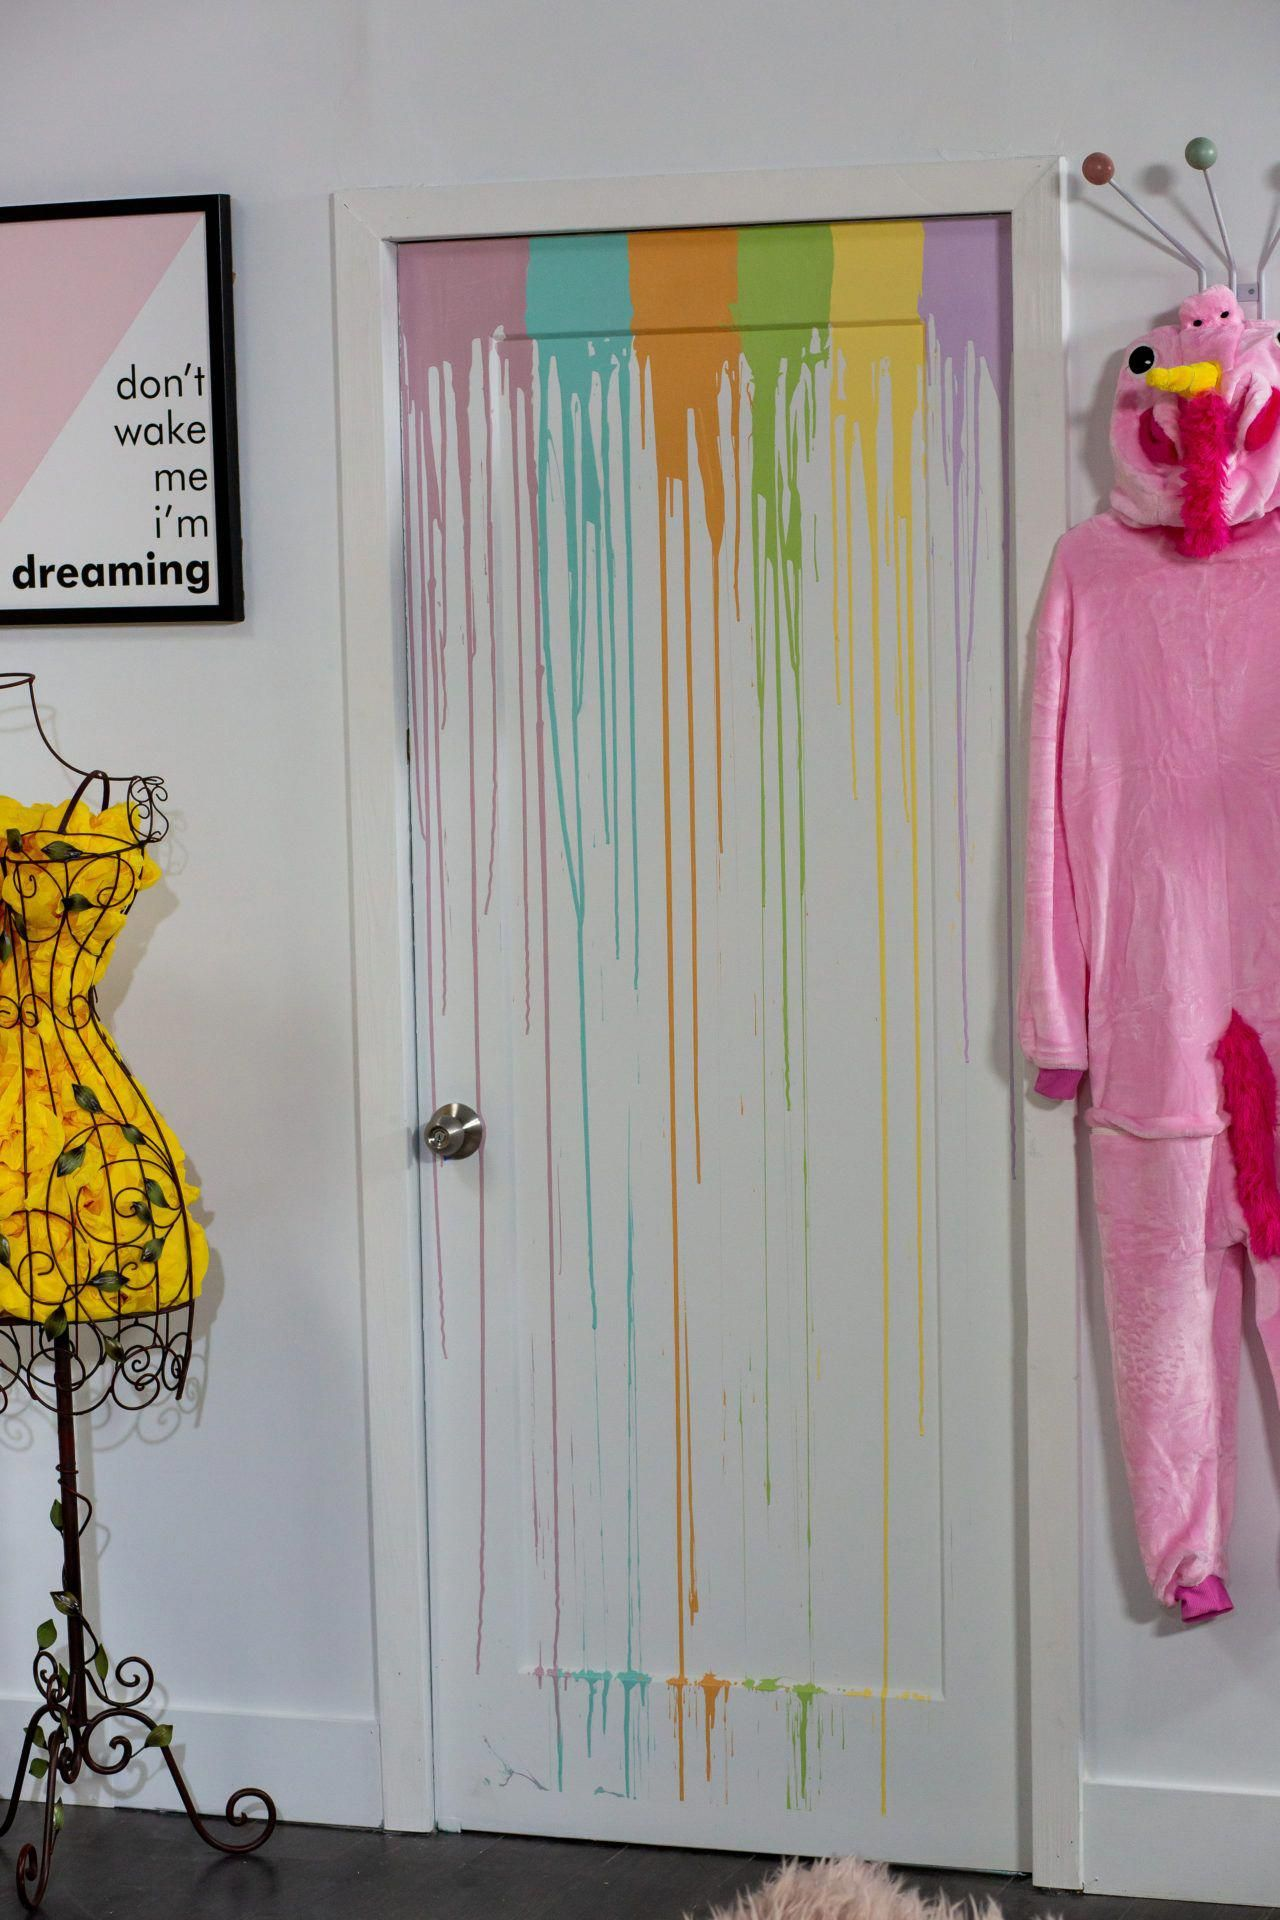 I Love The Diy Detail Of This Rainbow Drip Painted Door What A Creative Way To Add Some Interest To Painted Bedroom Doors Kids Room Design Bedroom Door Design